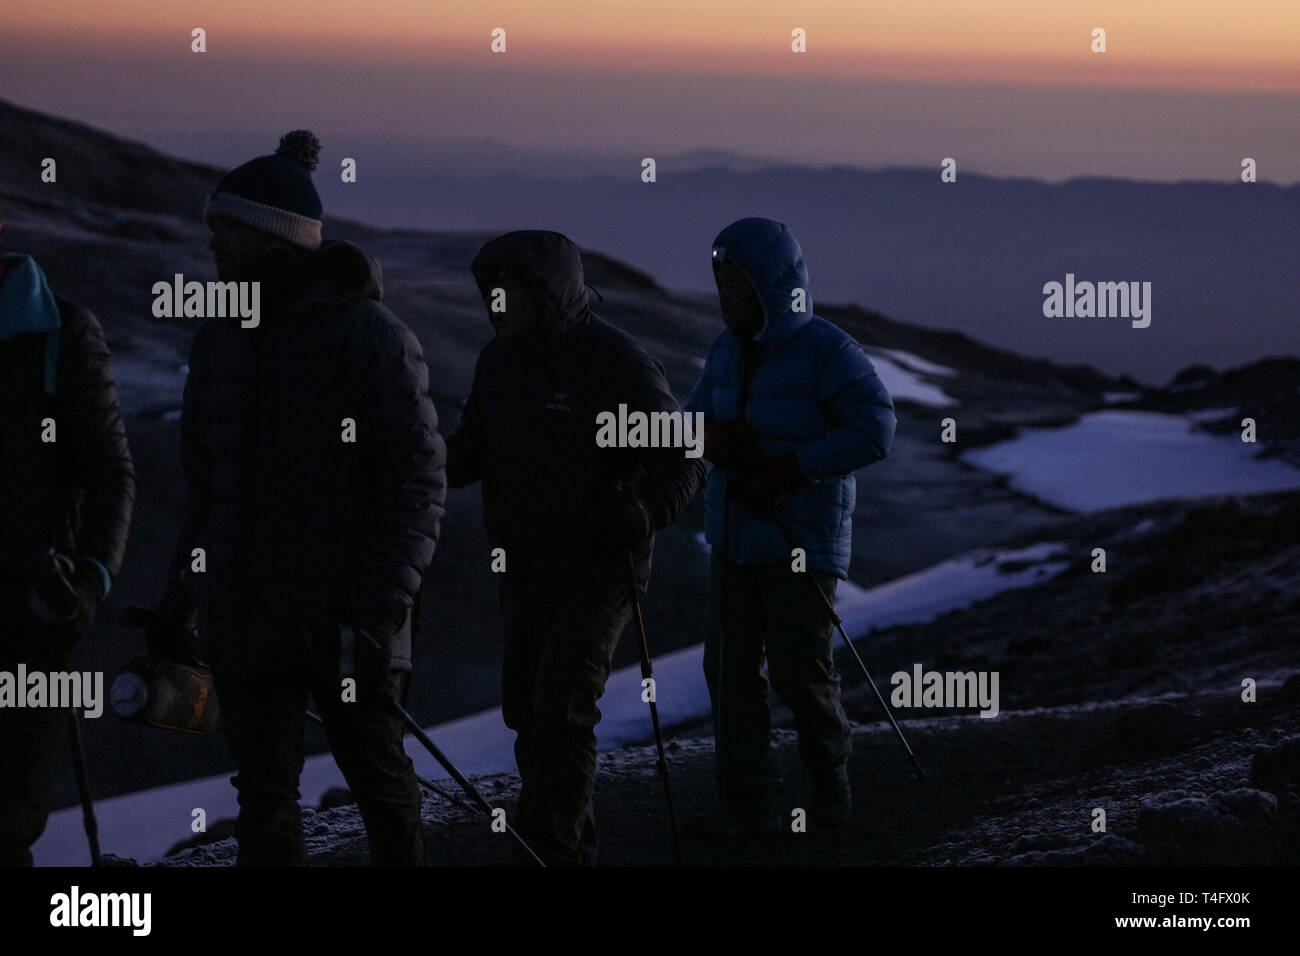 A group of tourists climbing on the Kilimanjaro mountain in Africa. Sunrise, red and yellow colors of the sun rays on the sky. Black peaks behind them Stock Photo